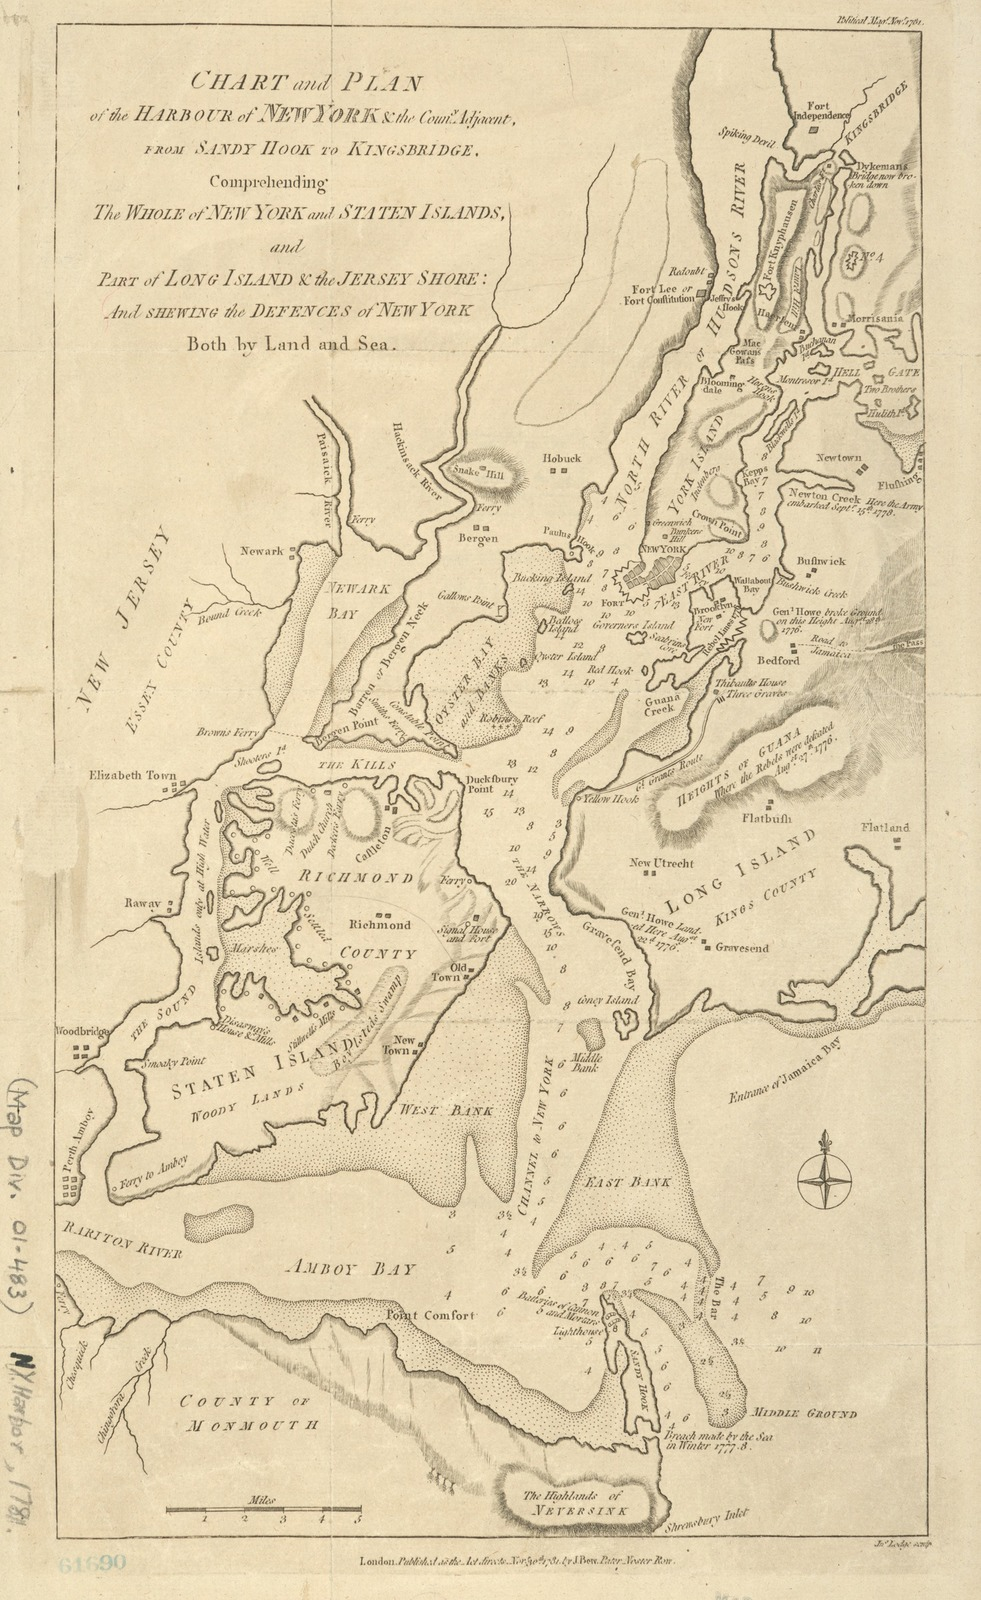 Chart and plan of the harbour of New York & the couny. adjacent, from Sandy Hook to Kingsbridge : comprehending the whole of New York and Staten Islands, and part of Long Island & the Jersey shore, and shewing the defences of New York both by land and sea